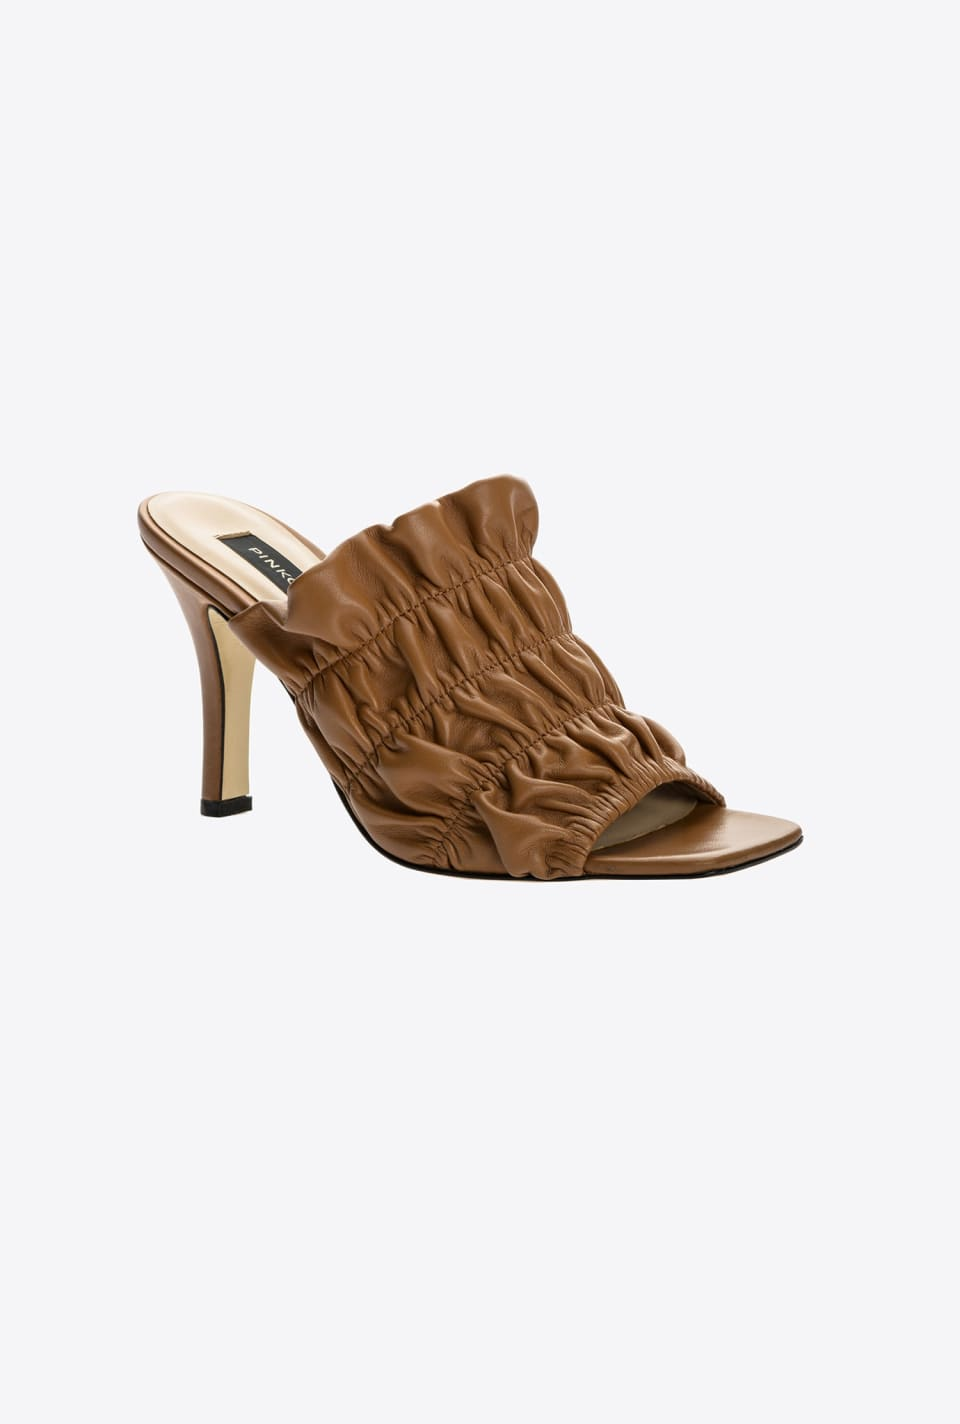 Embossed Nappa leather heeled mule sandals - Pinko